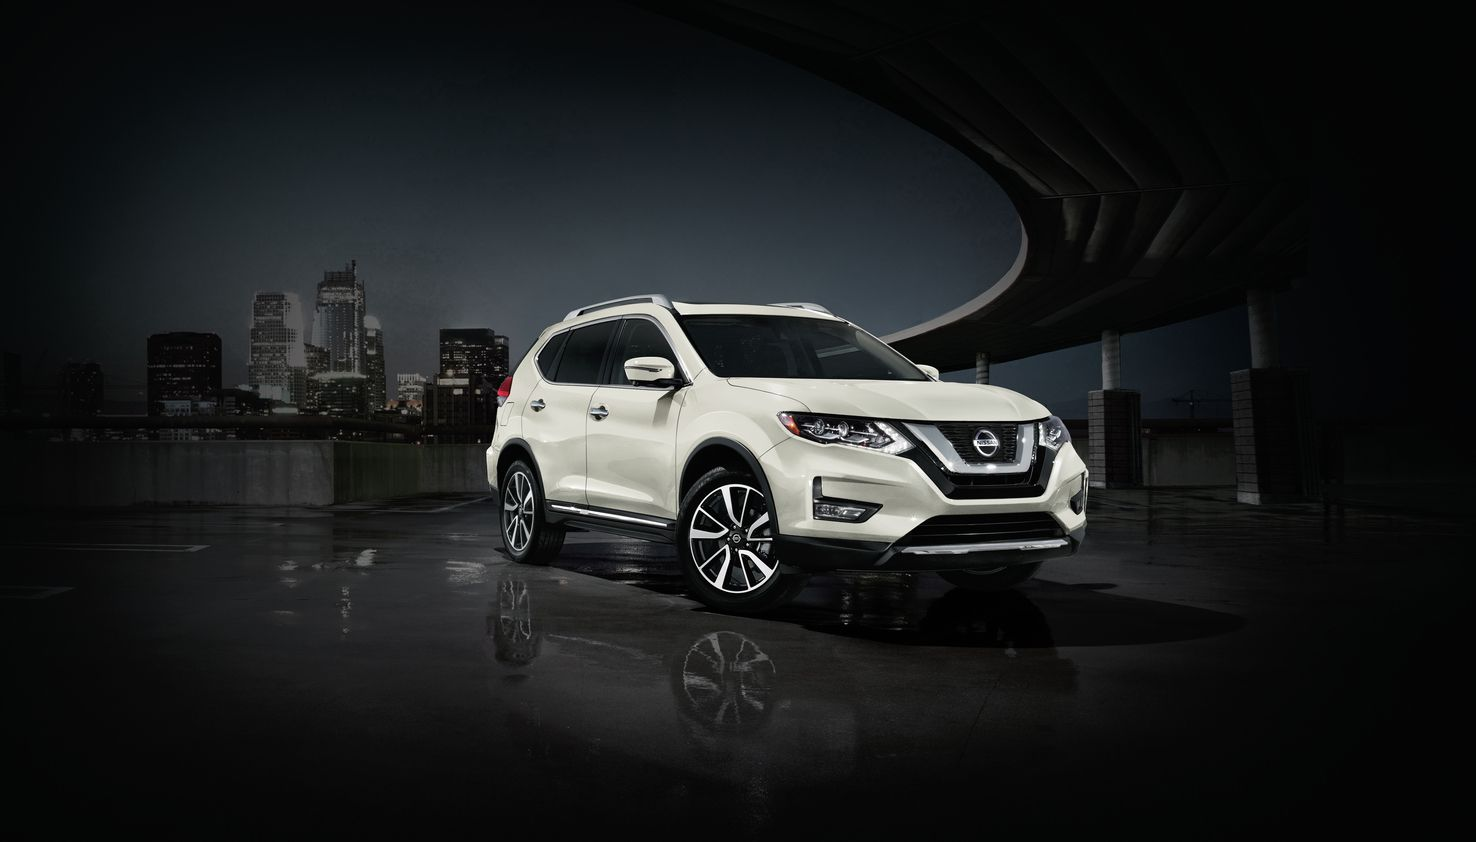 2020 Nissan Rogue Review, Pricing, and Specs